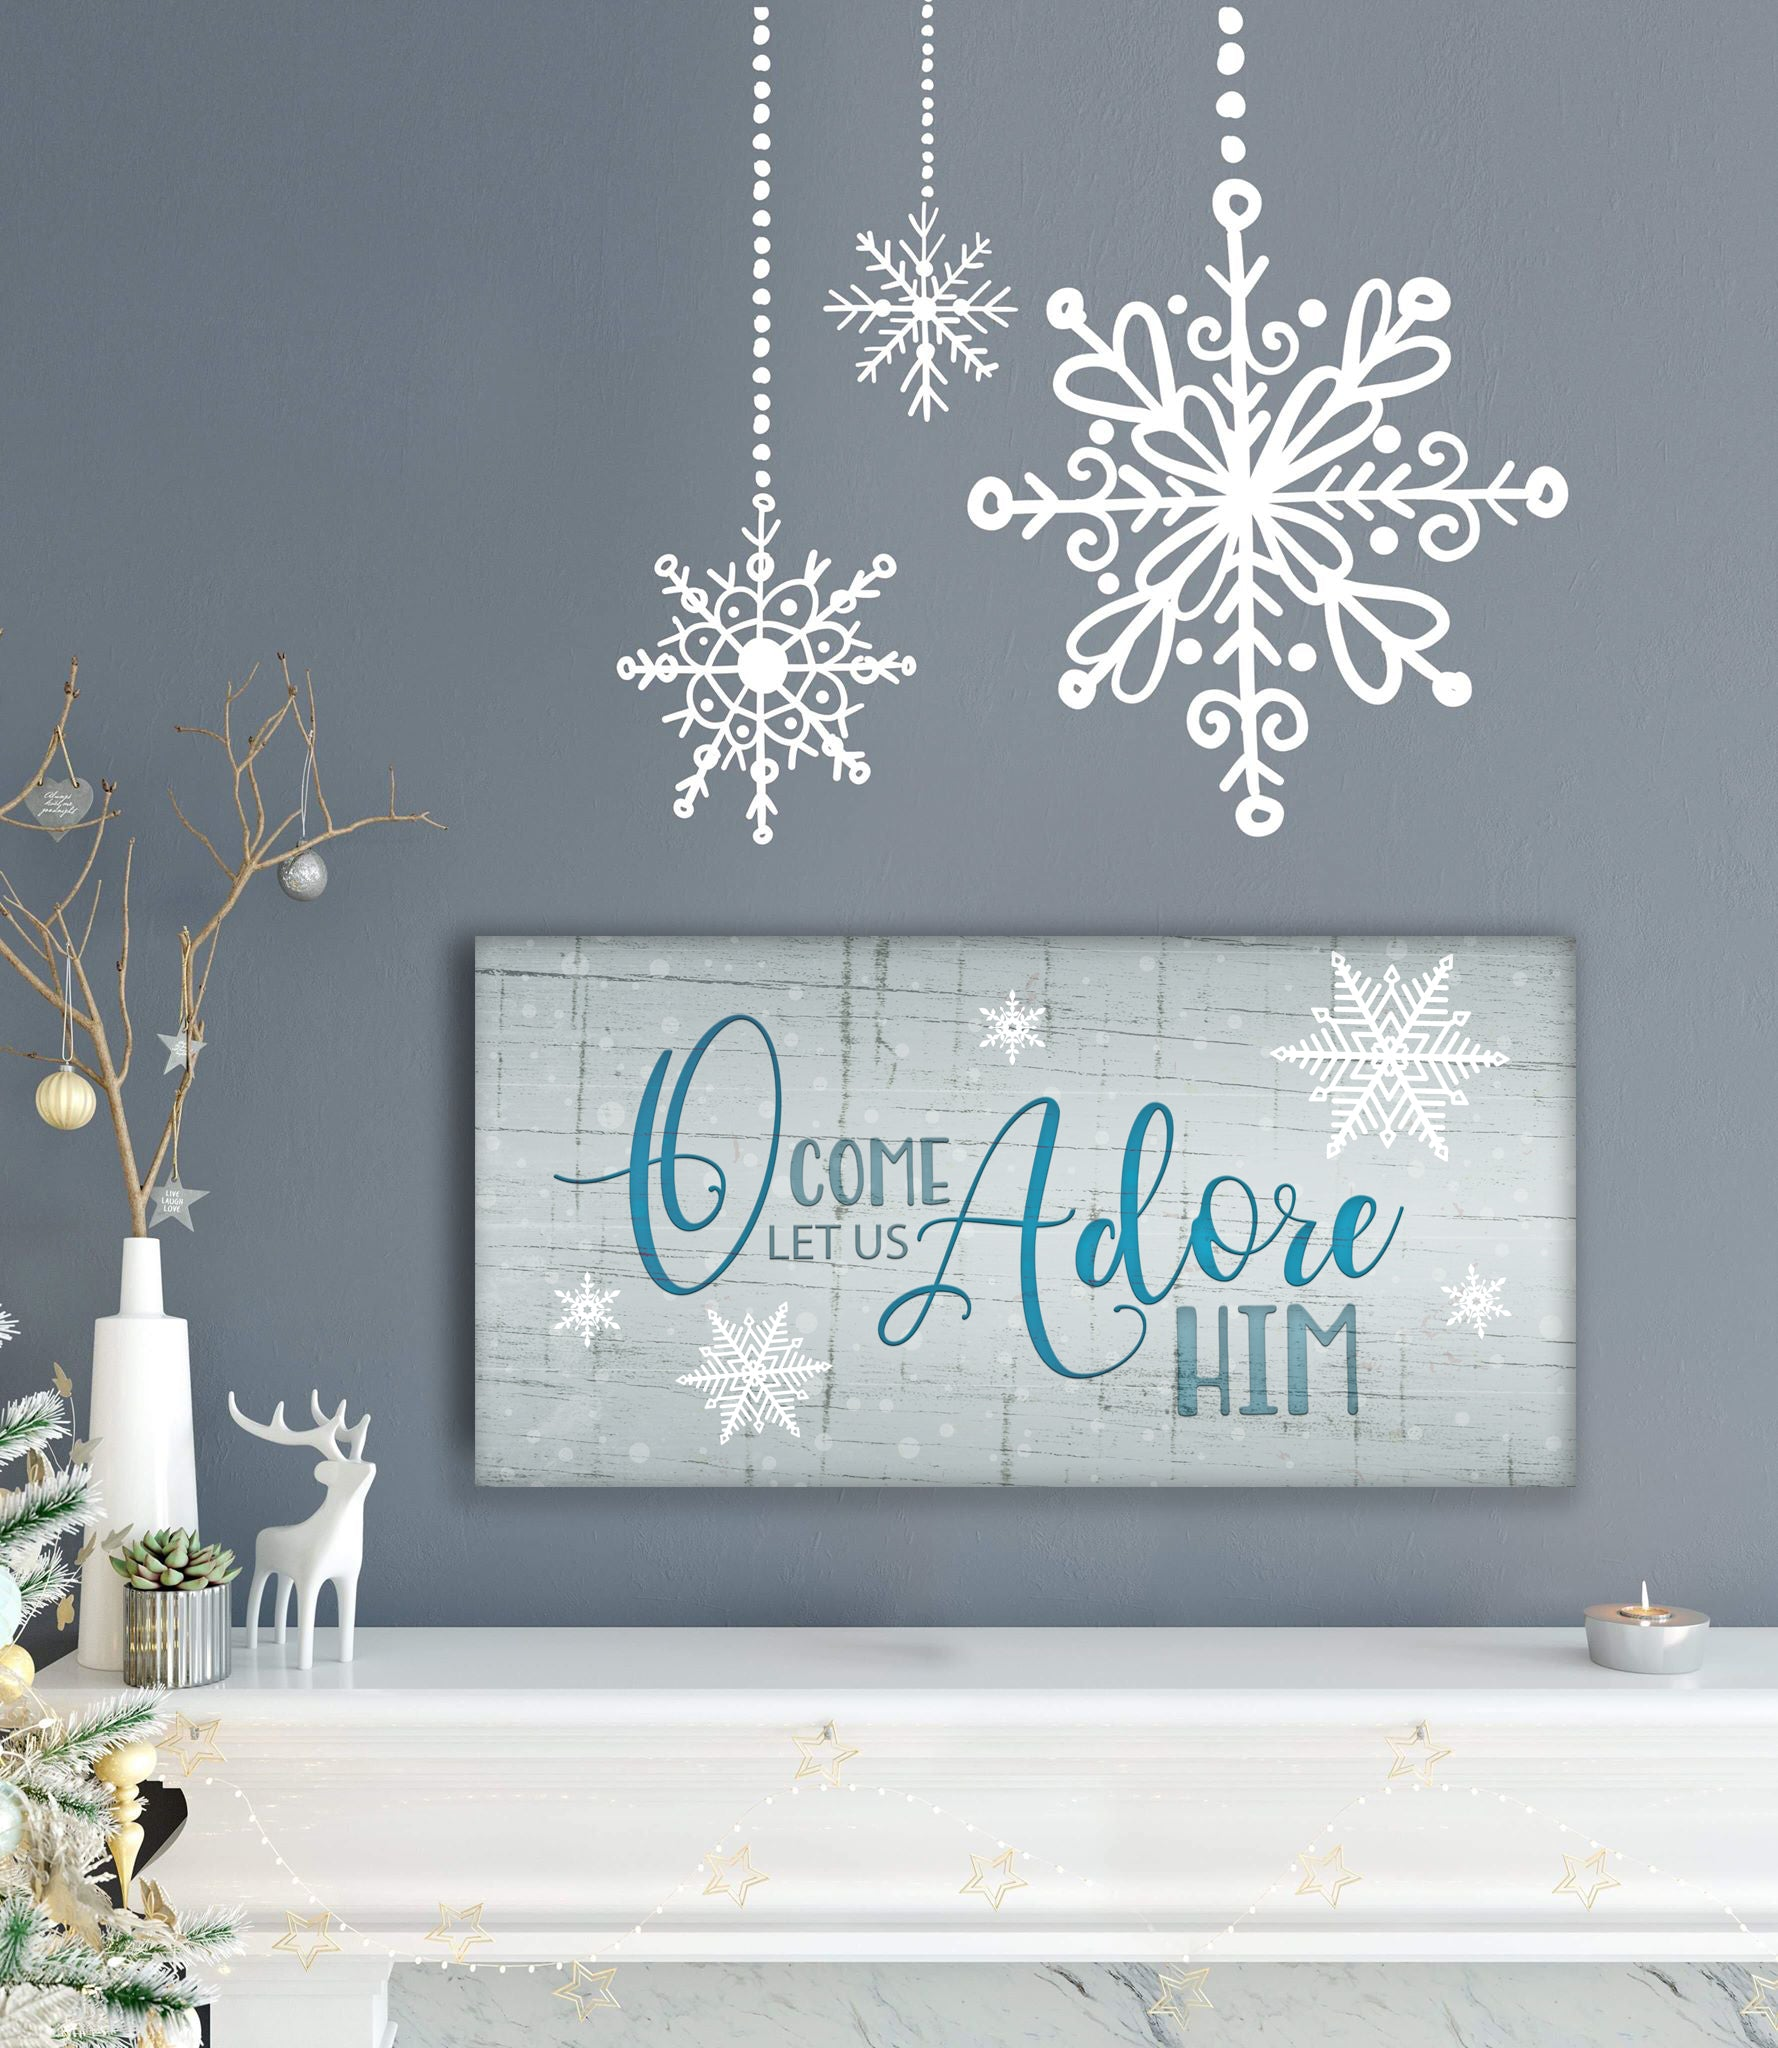 Holiday Decor Wall Art: O Come Let Us Adore Him (Wood Frame Ready To Hang)